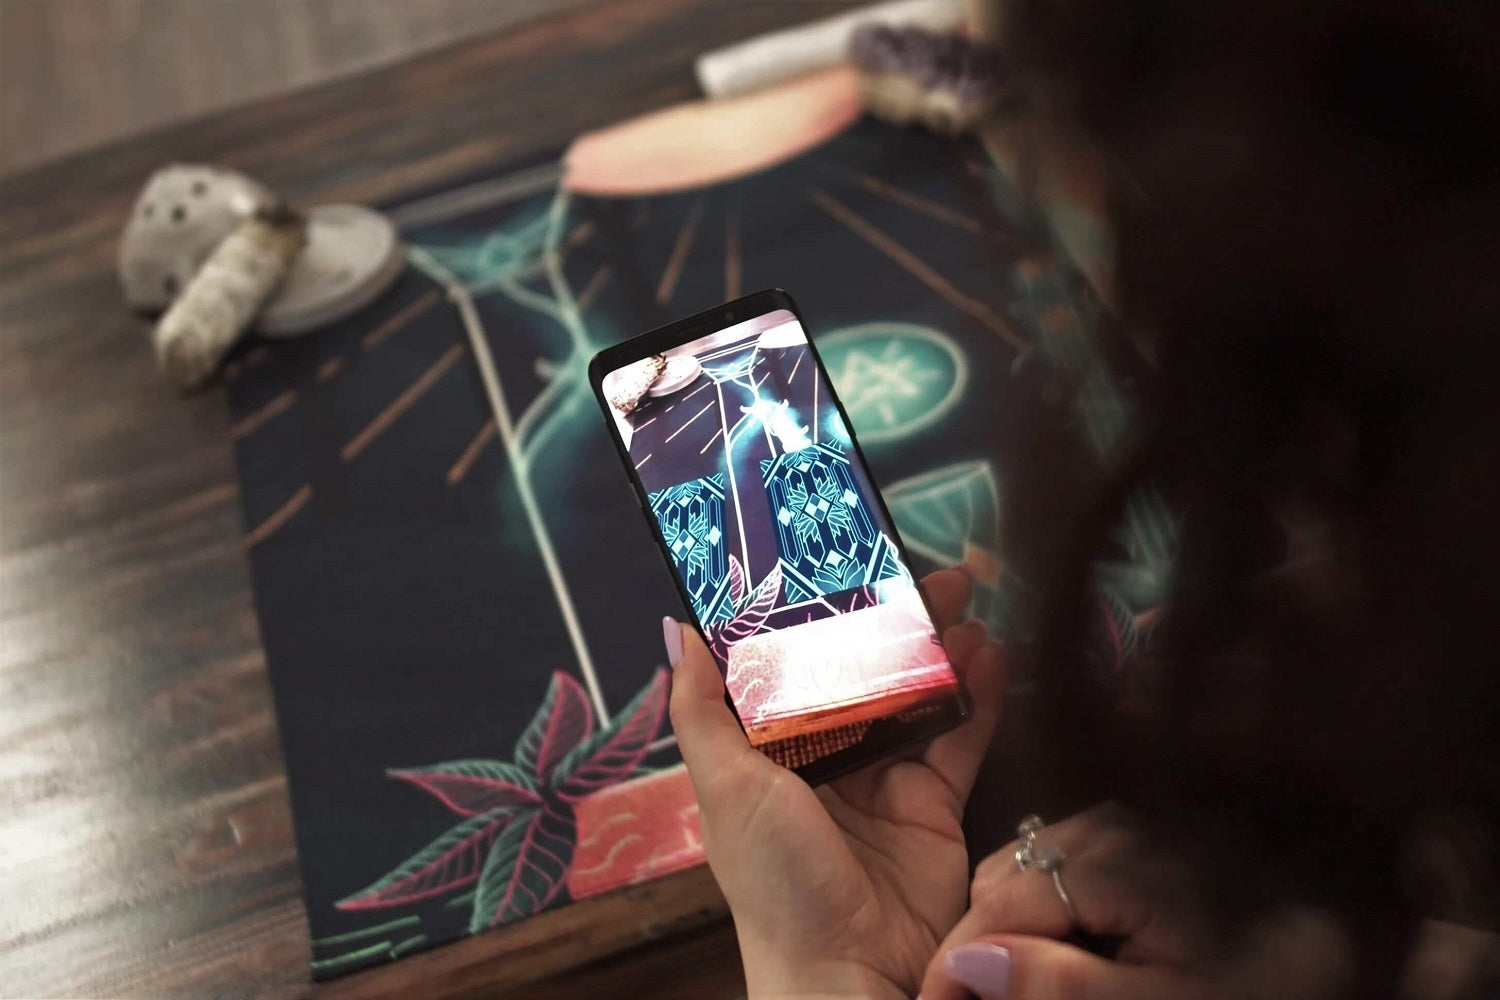 Woman holding a phone to use augmented reality to show a tarot spread